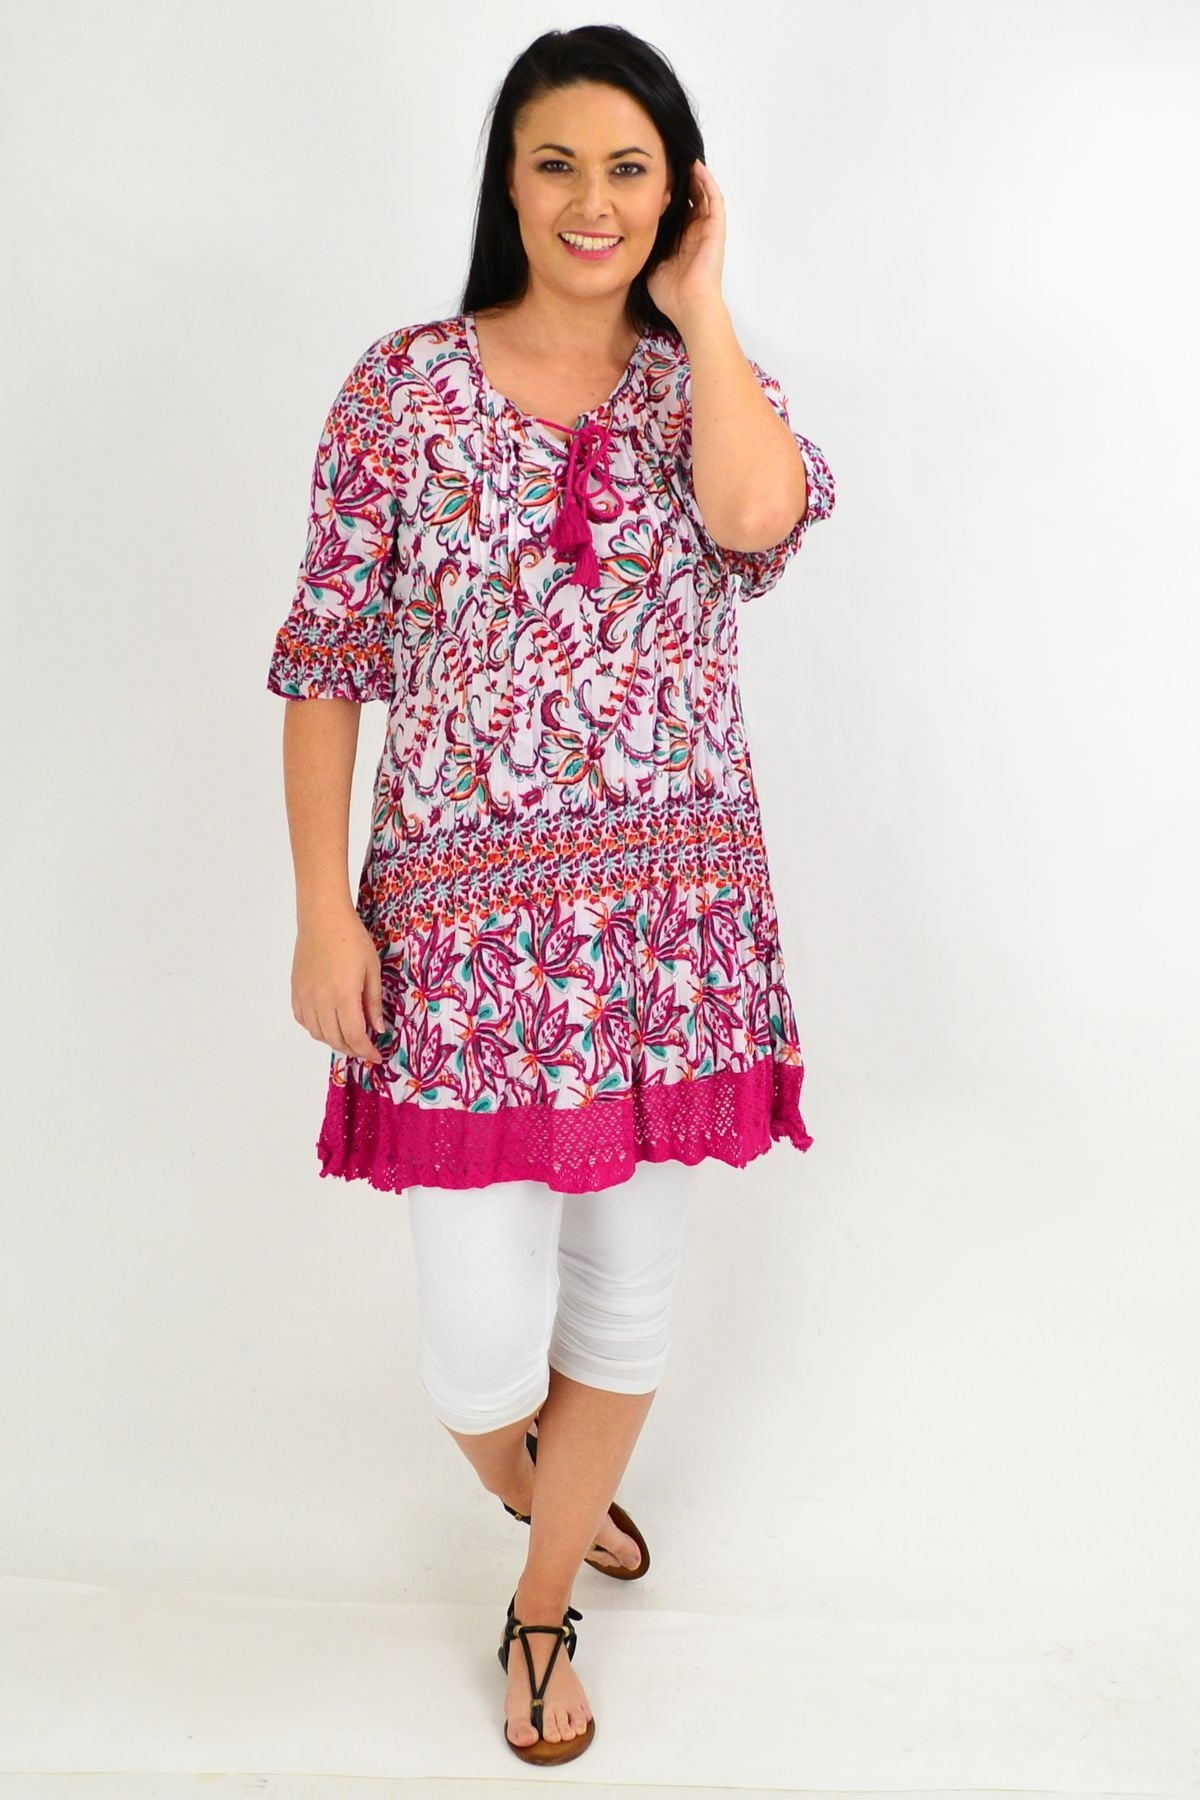 Fuchsia Floral Trim Tunic Top | I Love Tunics | Tunic Tops | Tunic | Tunic Dresses  | womens clothing online